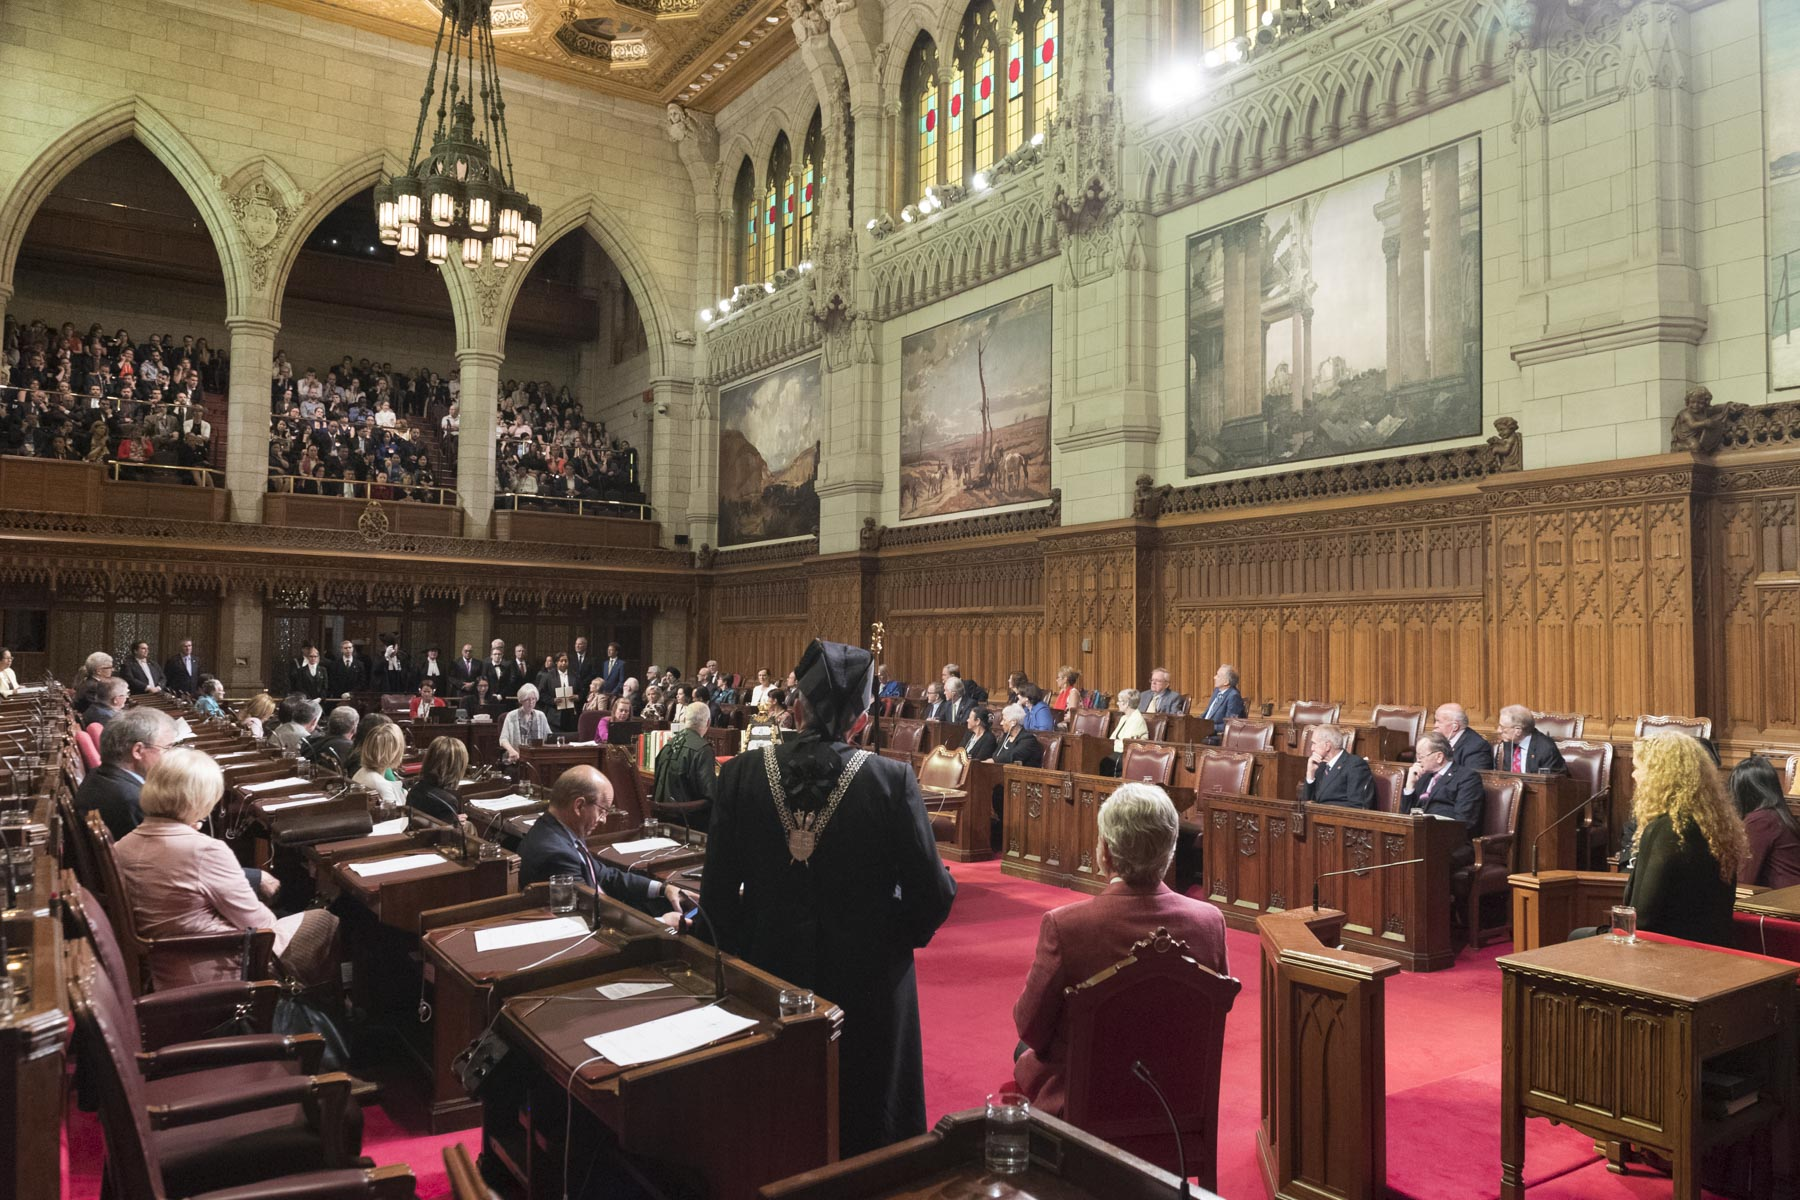 The ceremony took place inside the Senate Chamber on Parliament Hill, in Ottawa.